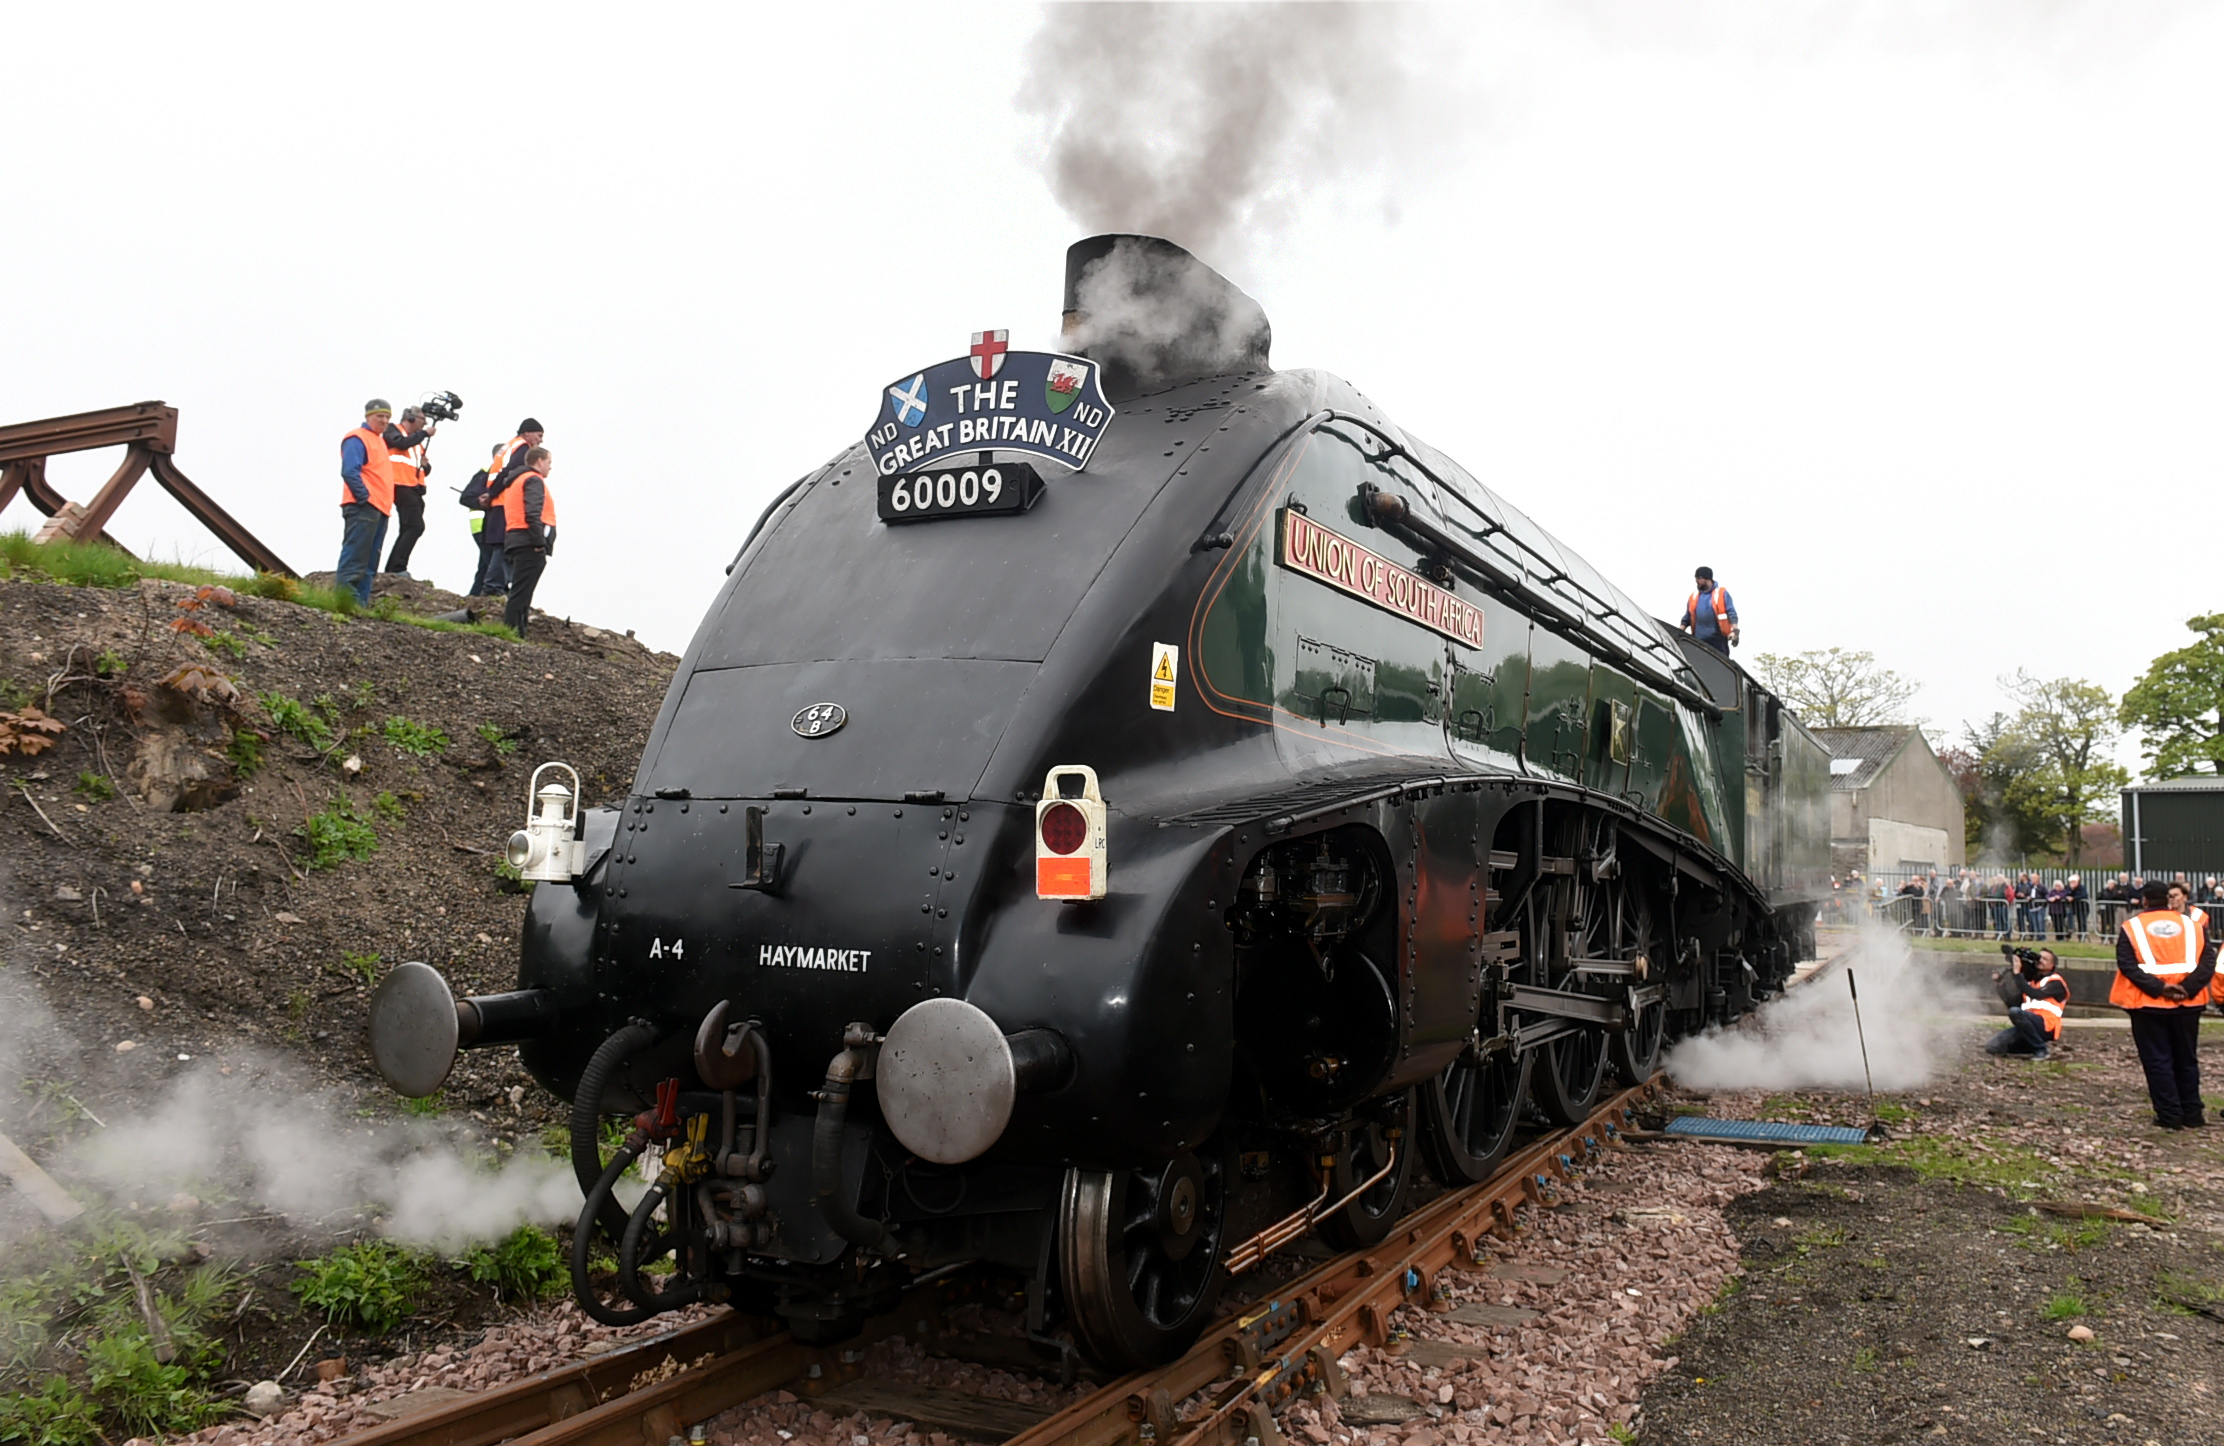 Classic steam train Union of South Africa returns to Aberdeen for first time since 1966 at Ferryhill Railway Turntable, Aberdeen. the train is met by the volunteers from Ferryhill Railway Heritage Trust. Pictures by Jim Irvine